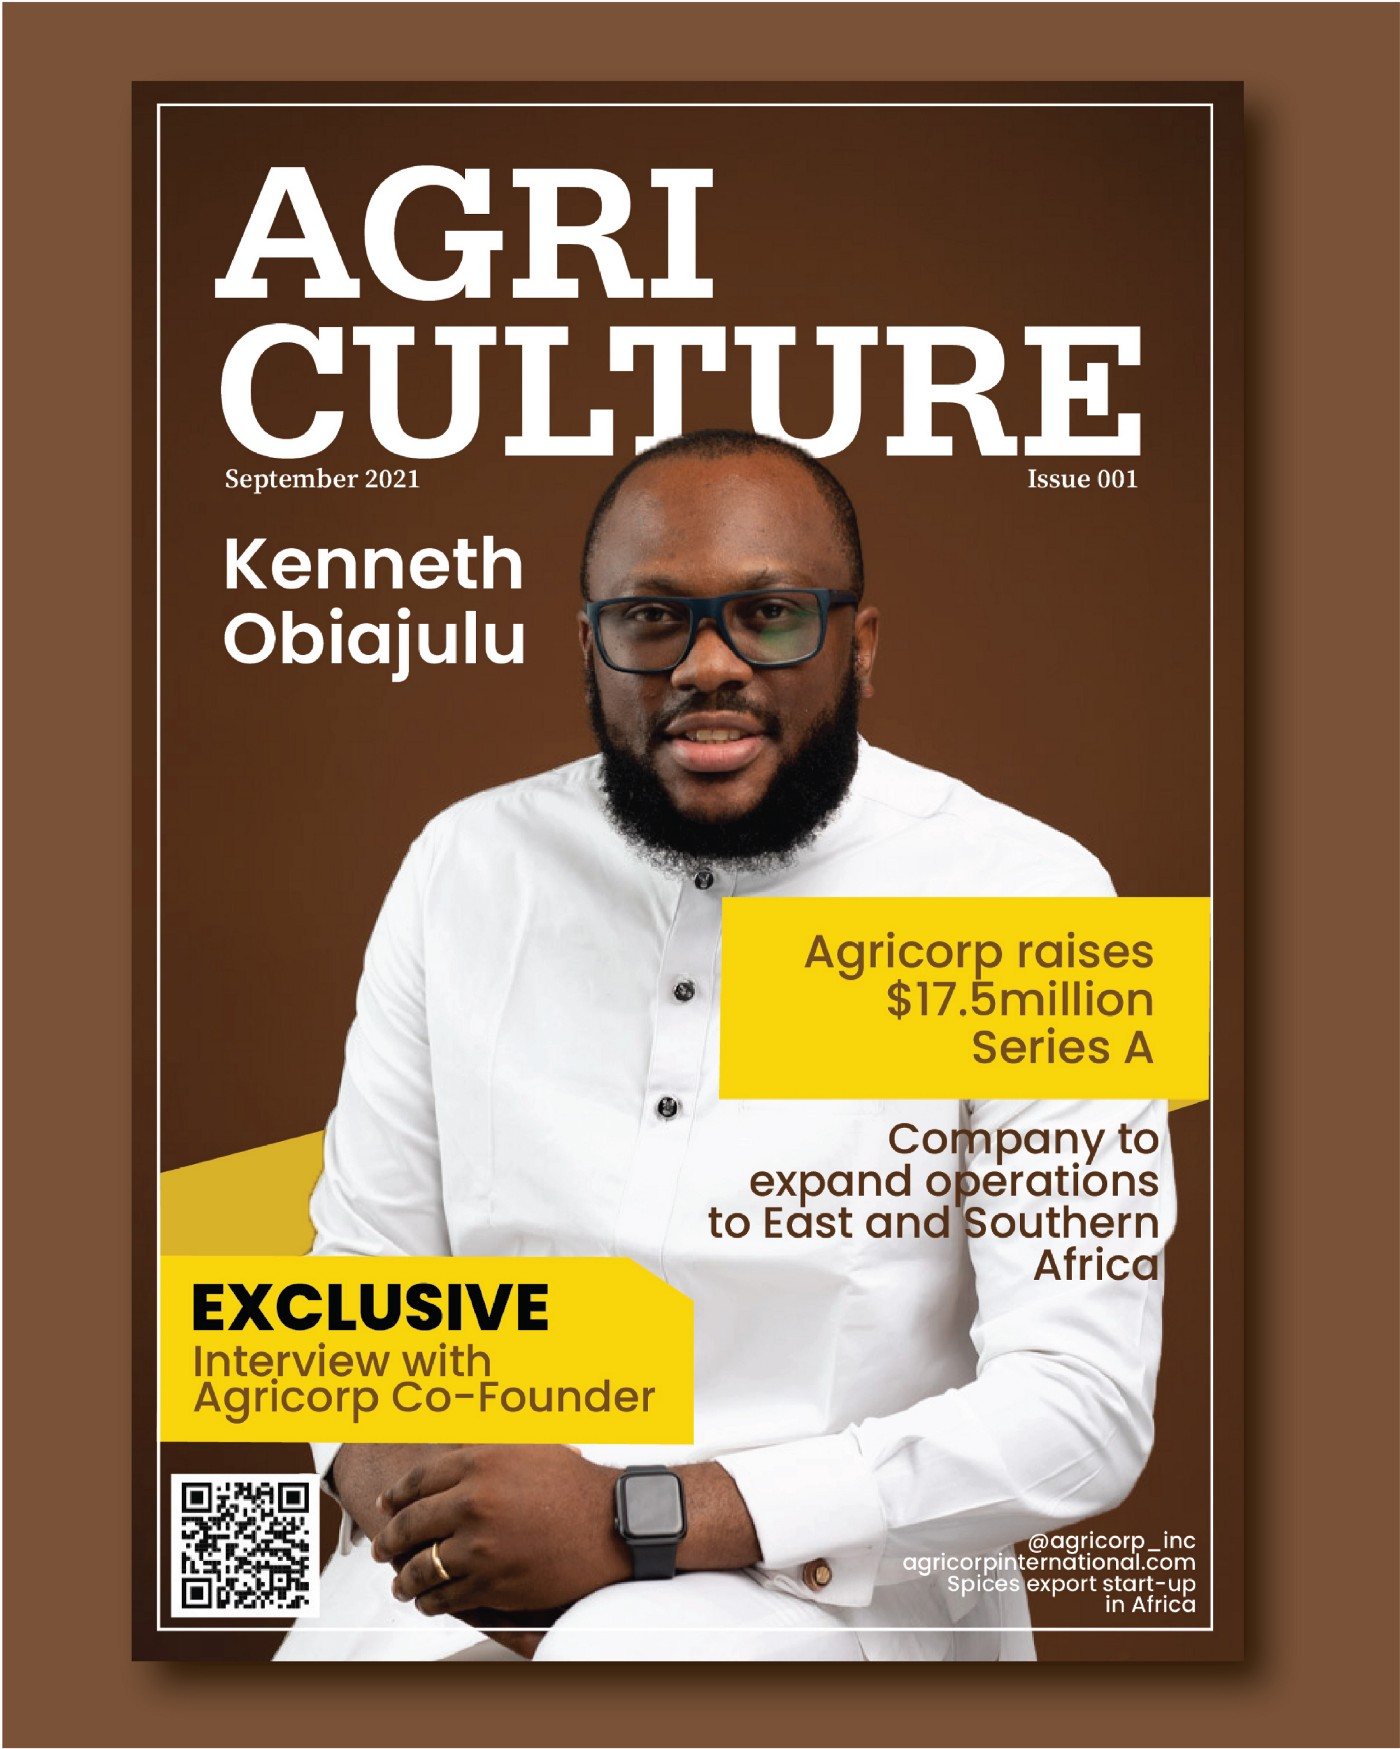 Interview and press release with Kenneth Obiajulu, Agricorp CEO